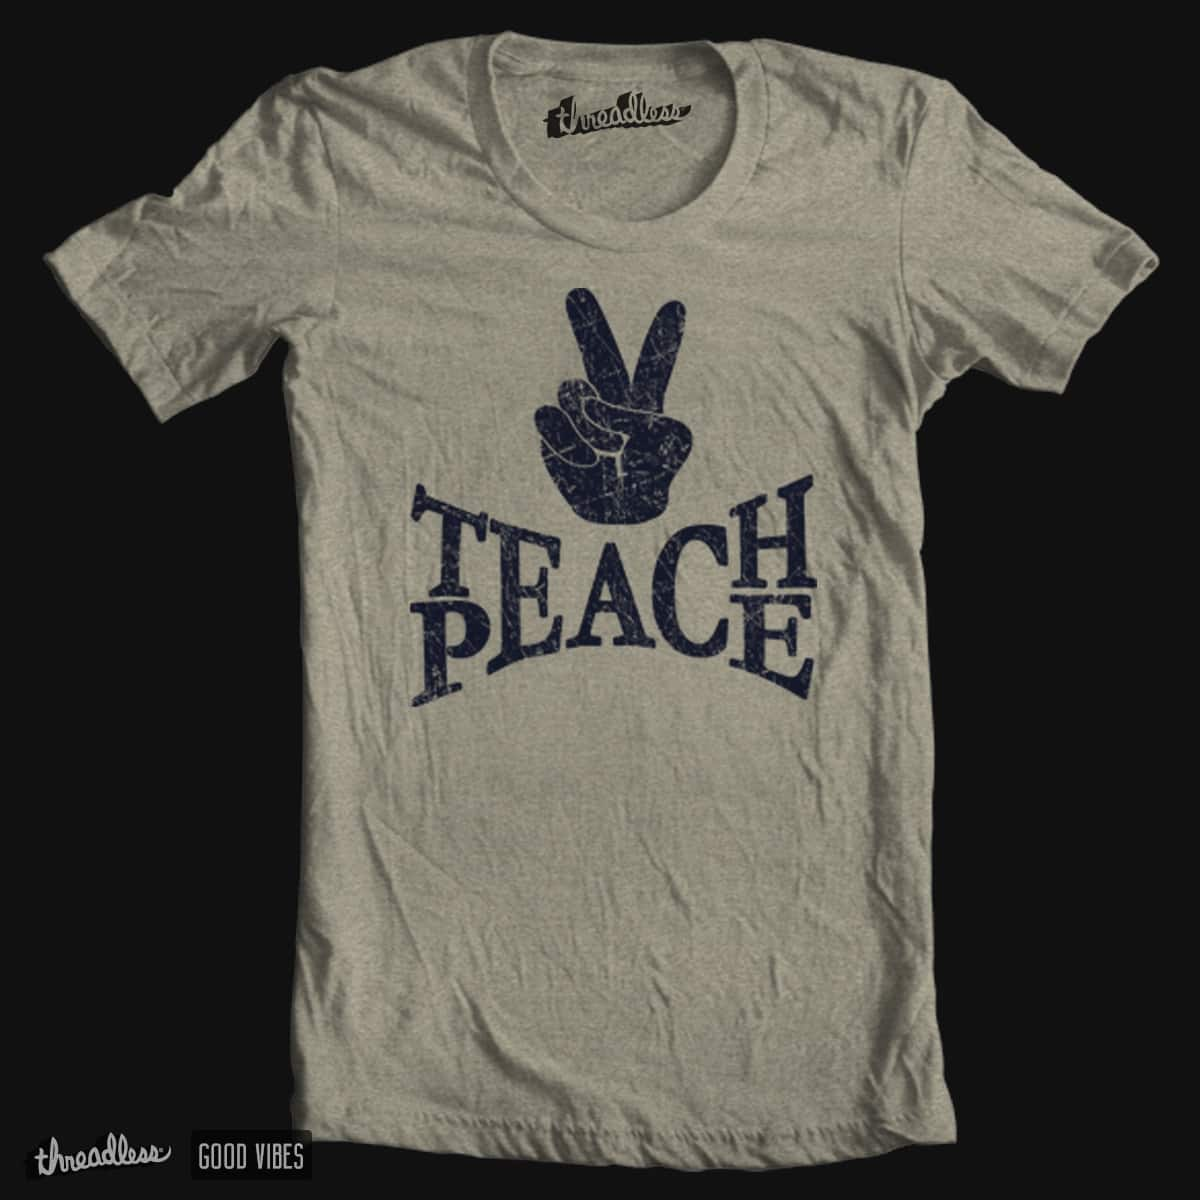 TEACH PEACE by jrtoyman on Threadless